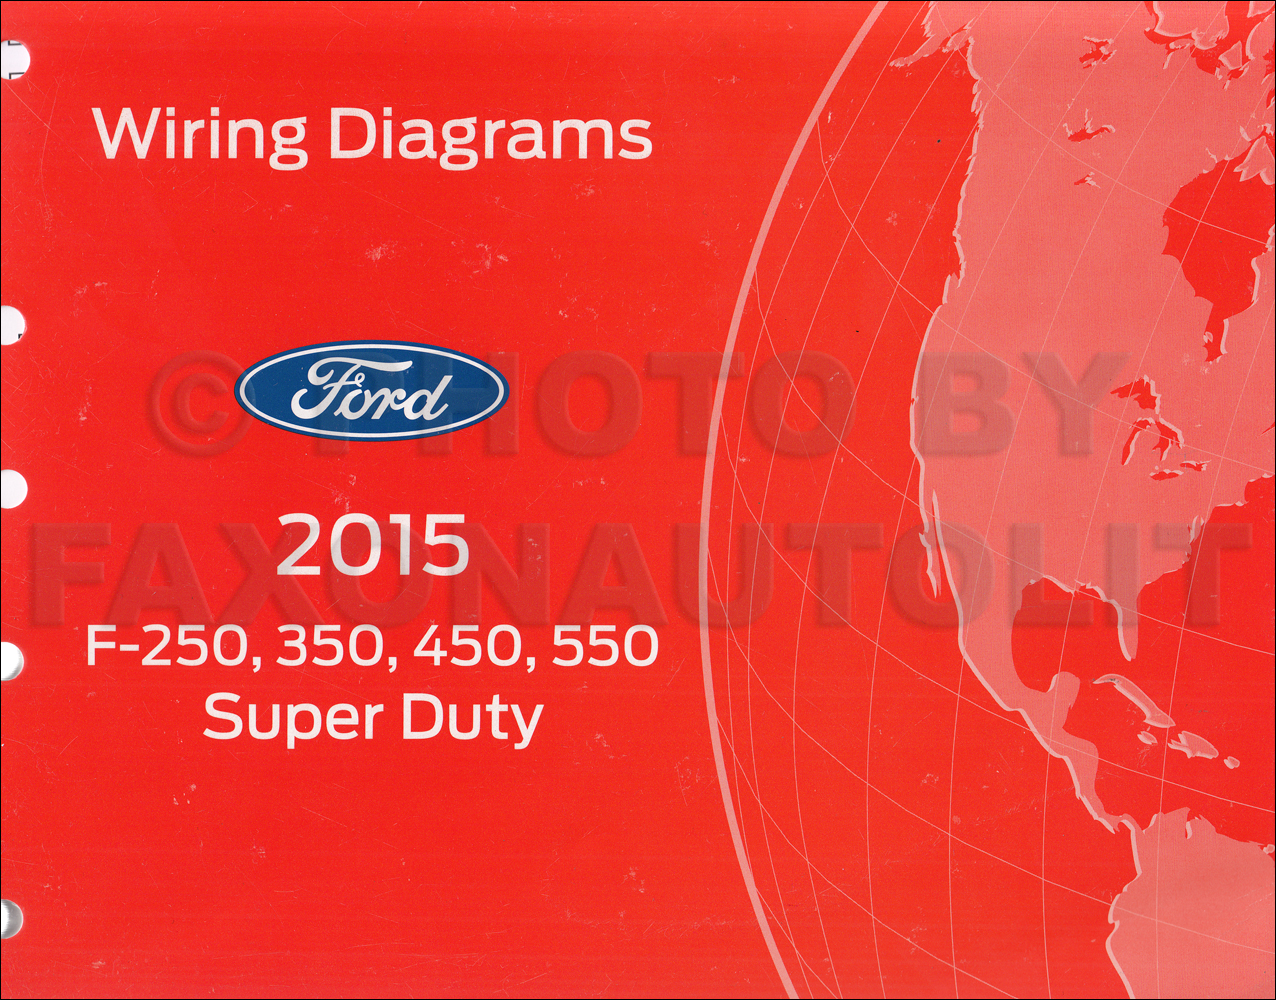 2015 Ford F250 F550 Super Dutytruck Wiring Diagram Manual Original 2006 F 250 Customer Access